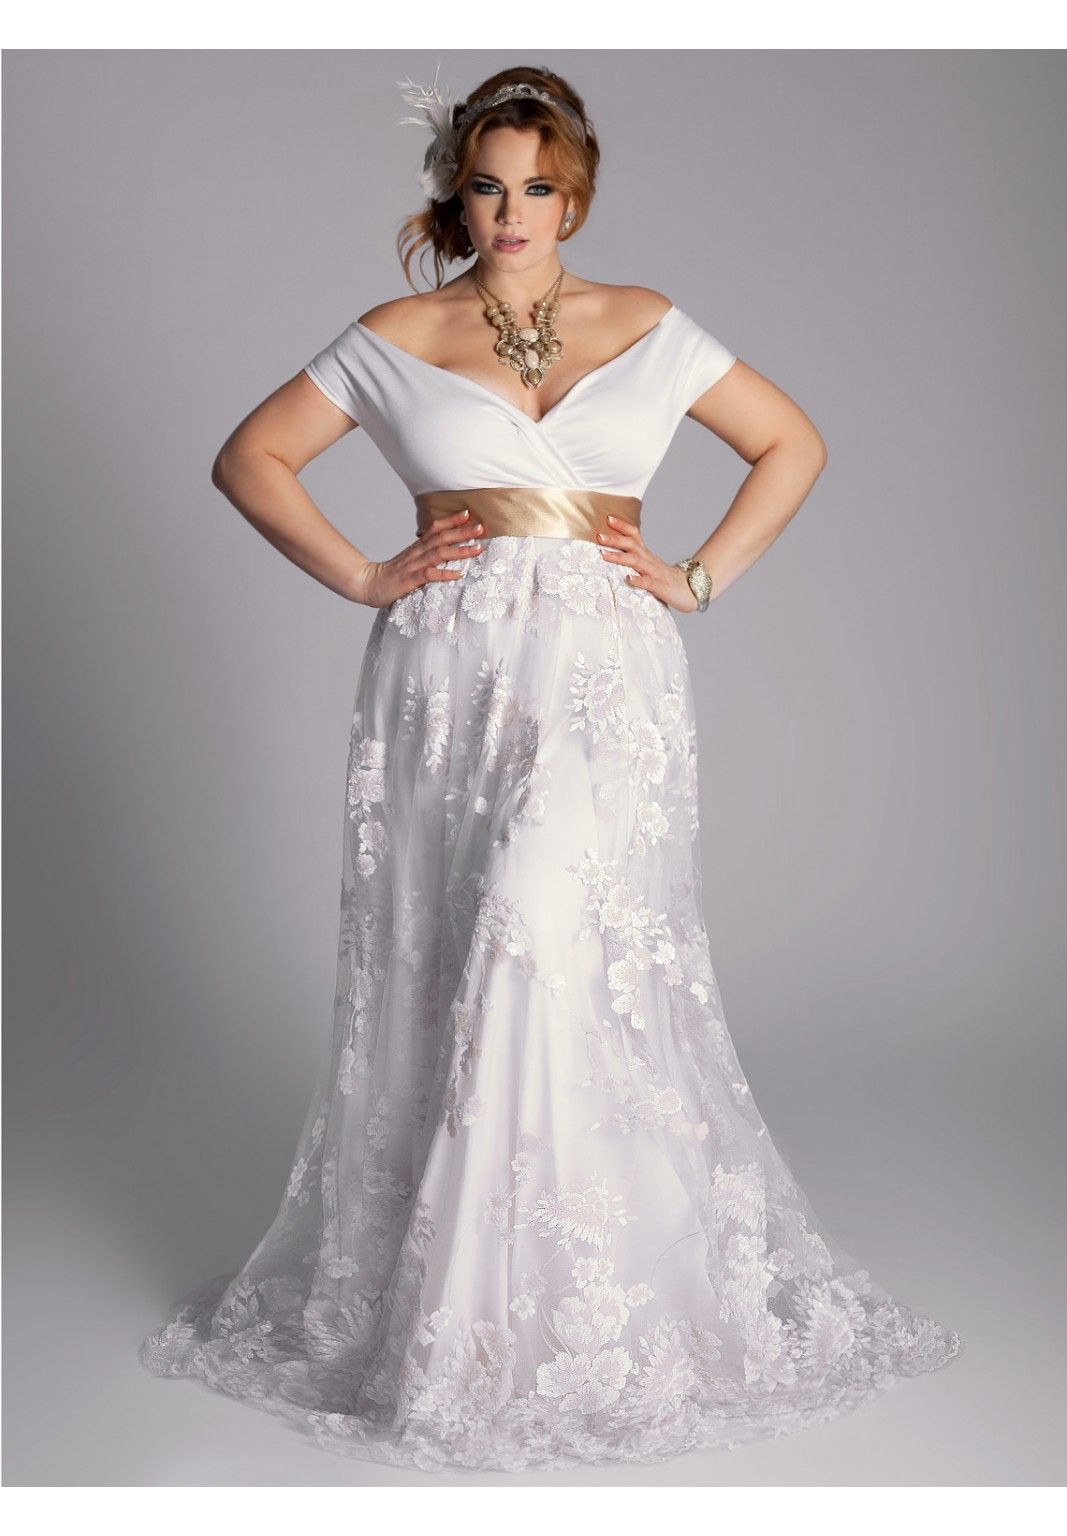 Vintage Wedding Gown Casual Wedding Dress Plus Size Wedding Gowns Wedding Dresses Plus Size